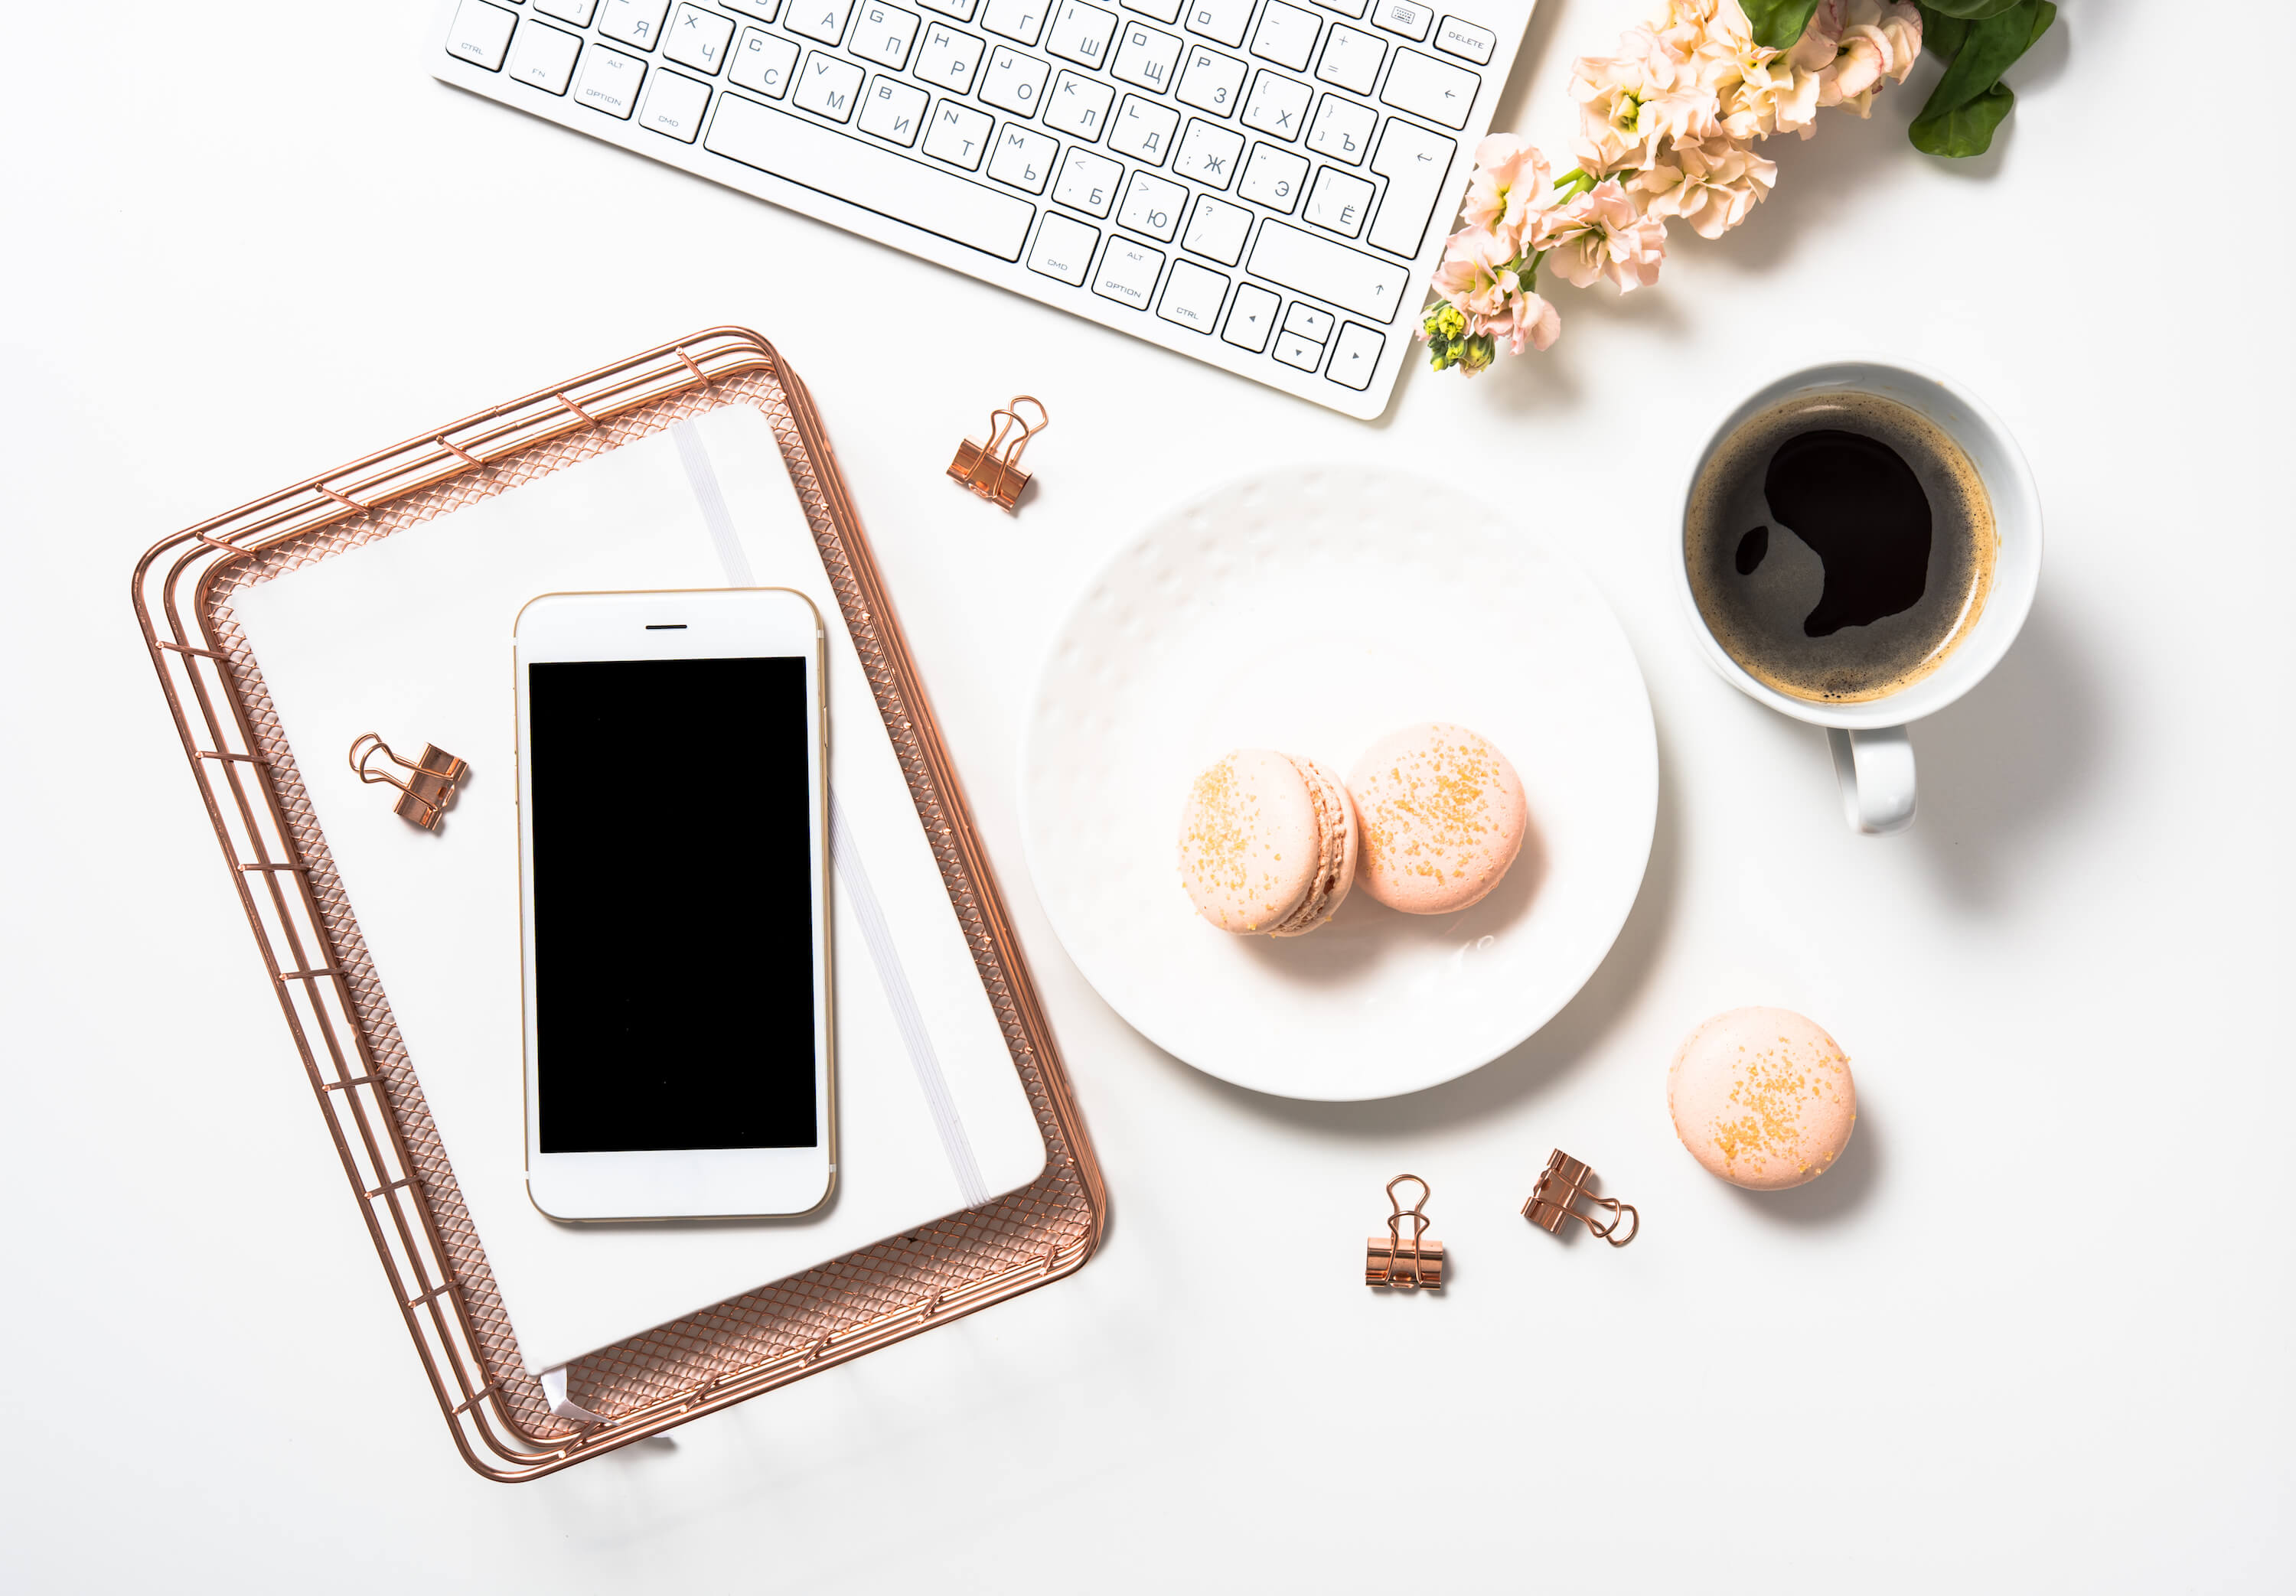 How to build an email list for your travel blog - coffee and macaroons on desk